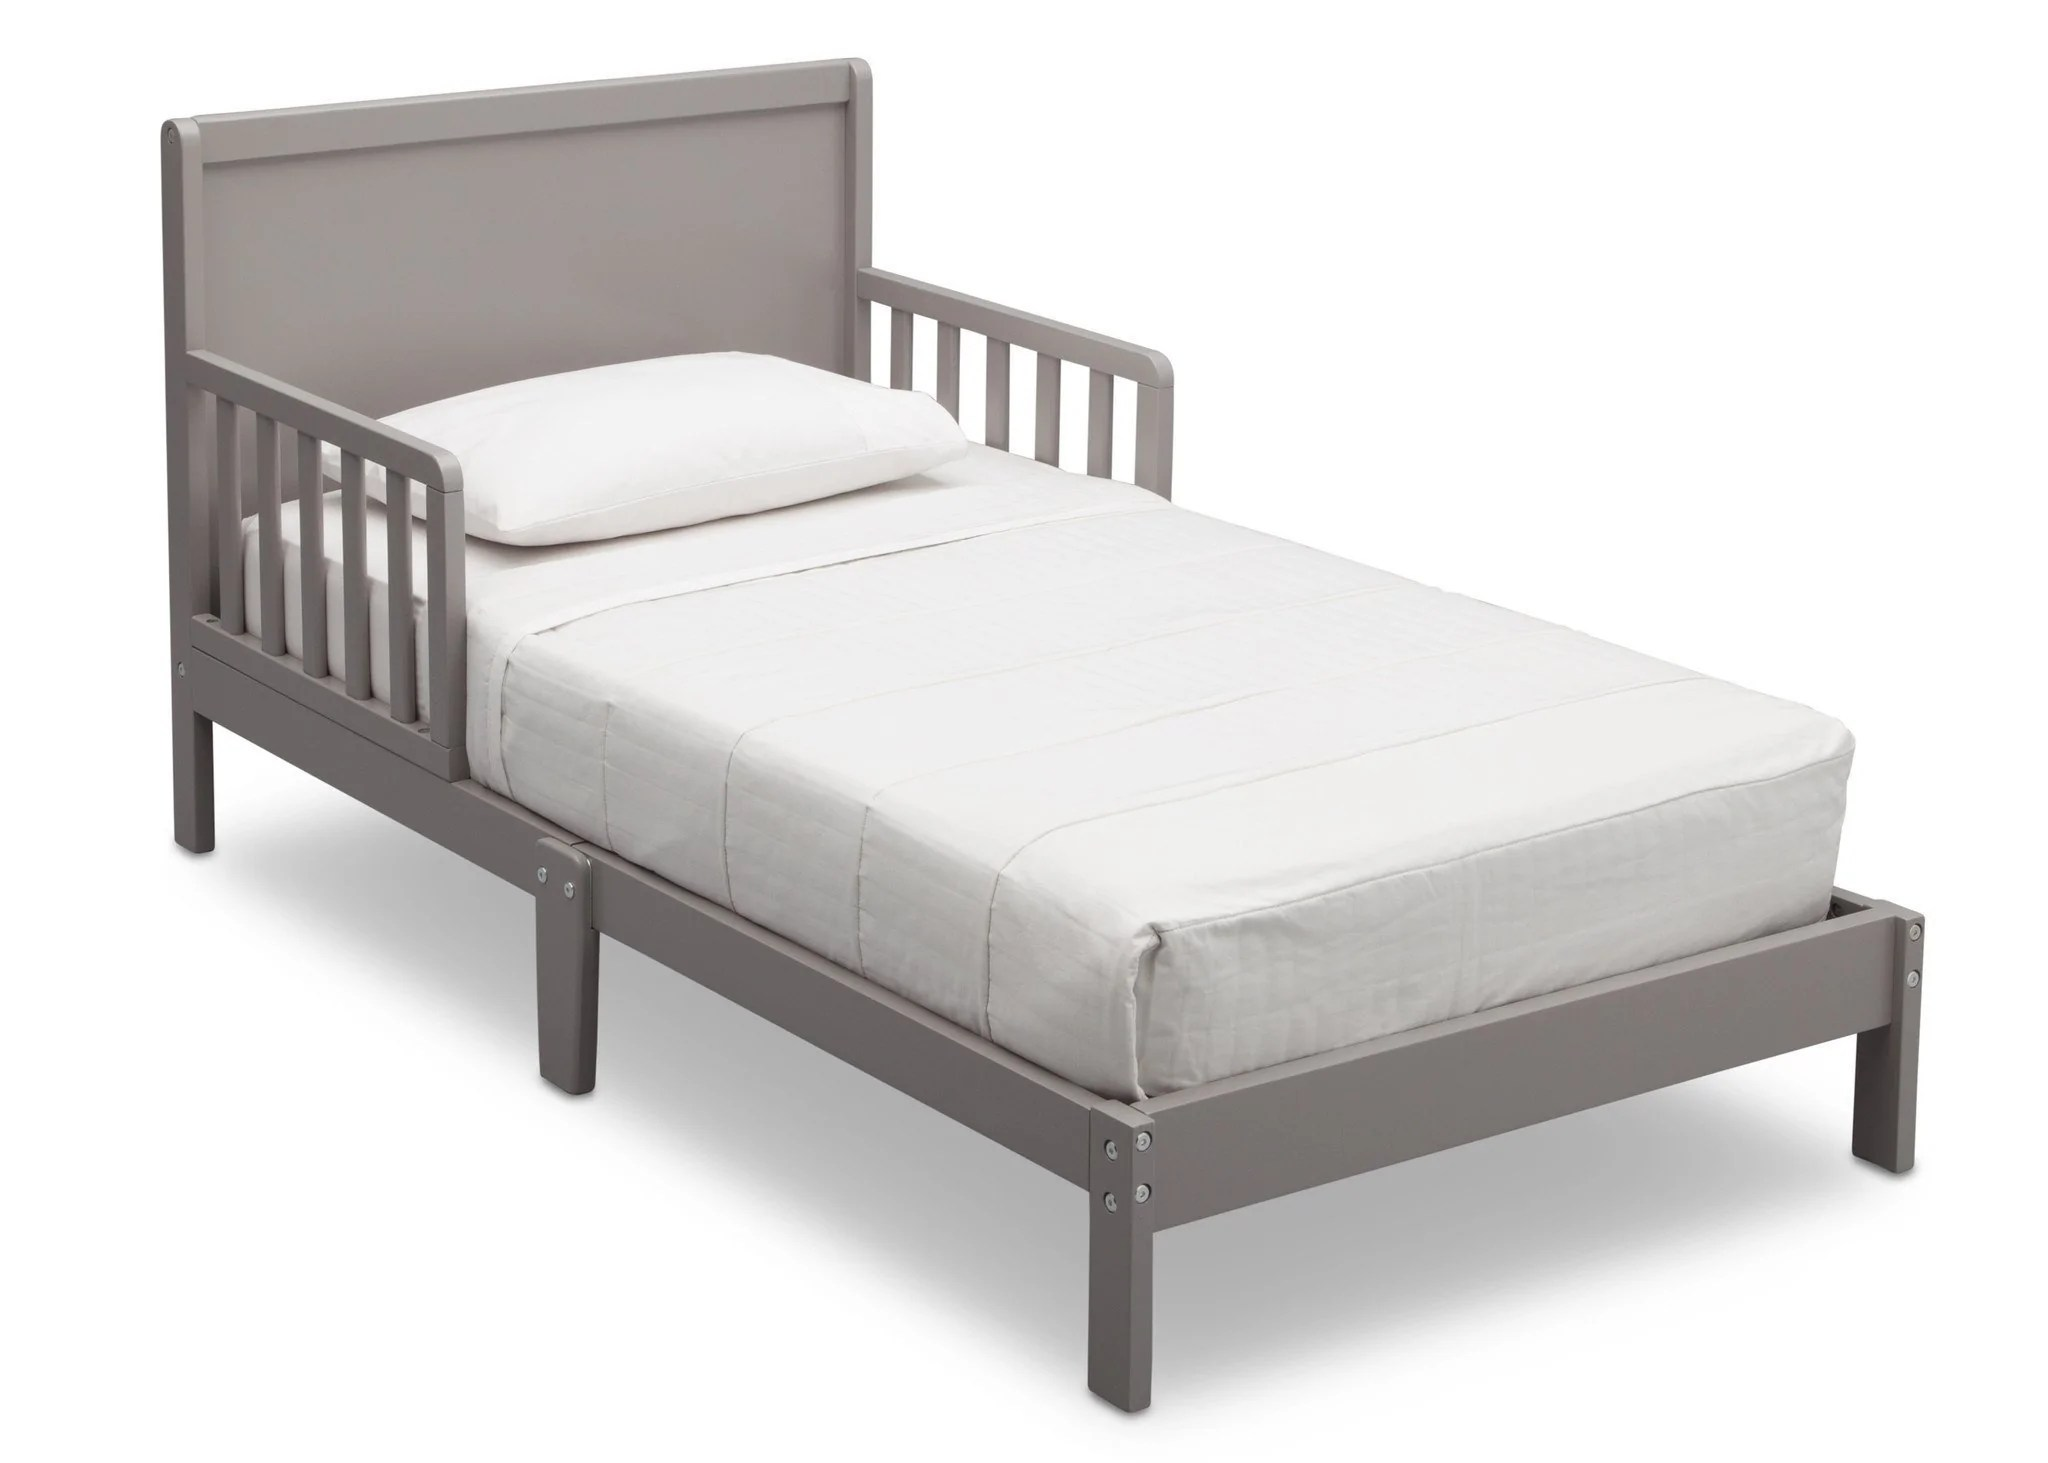 Calm 540640 026 Delta Fabio Toddler Bed Grey Angle C3486d6f Fba1 4a61 9193 35586078182f Toddler Bed Mattress Near Me Toddler Bed Mattress Size Chart baby Toddler Bed Mattress